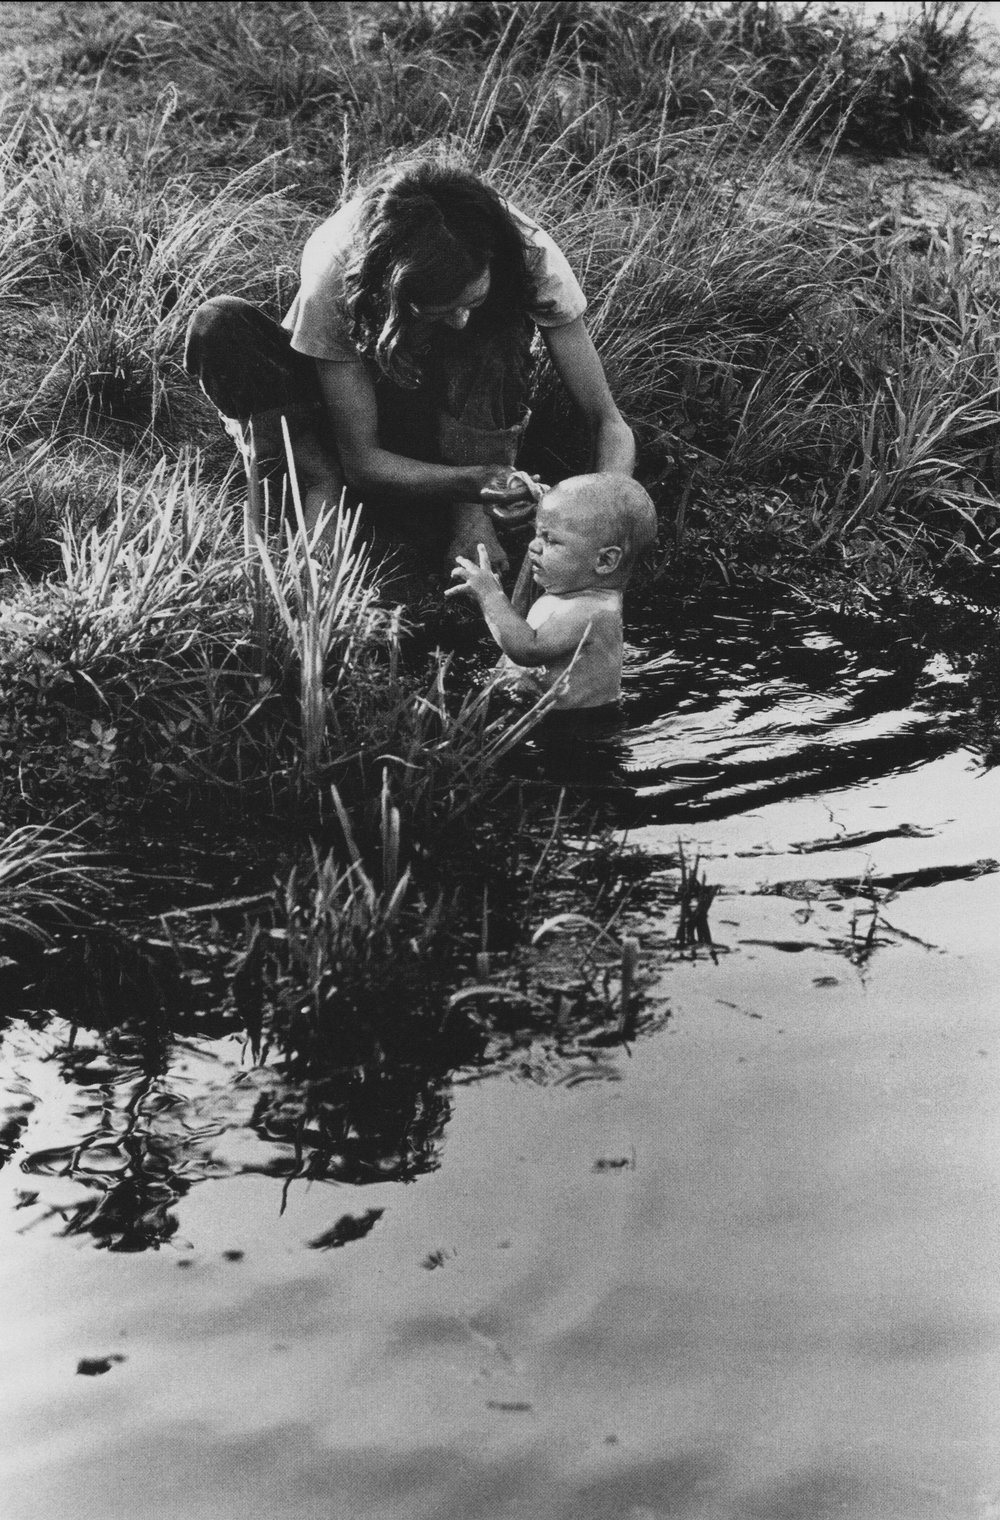 Linda bathing Shannon in irrigation canal, Loxahatchee, FL